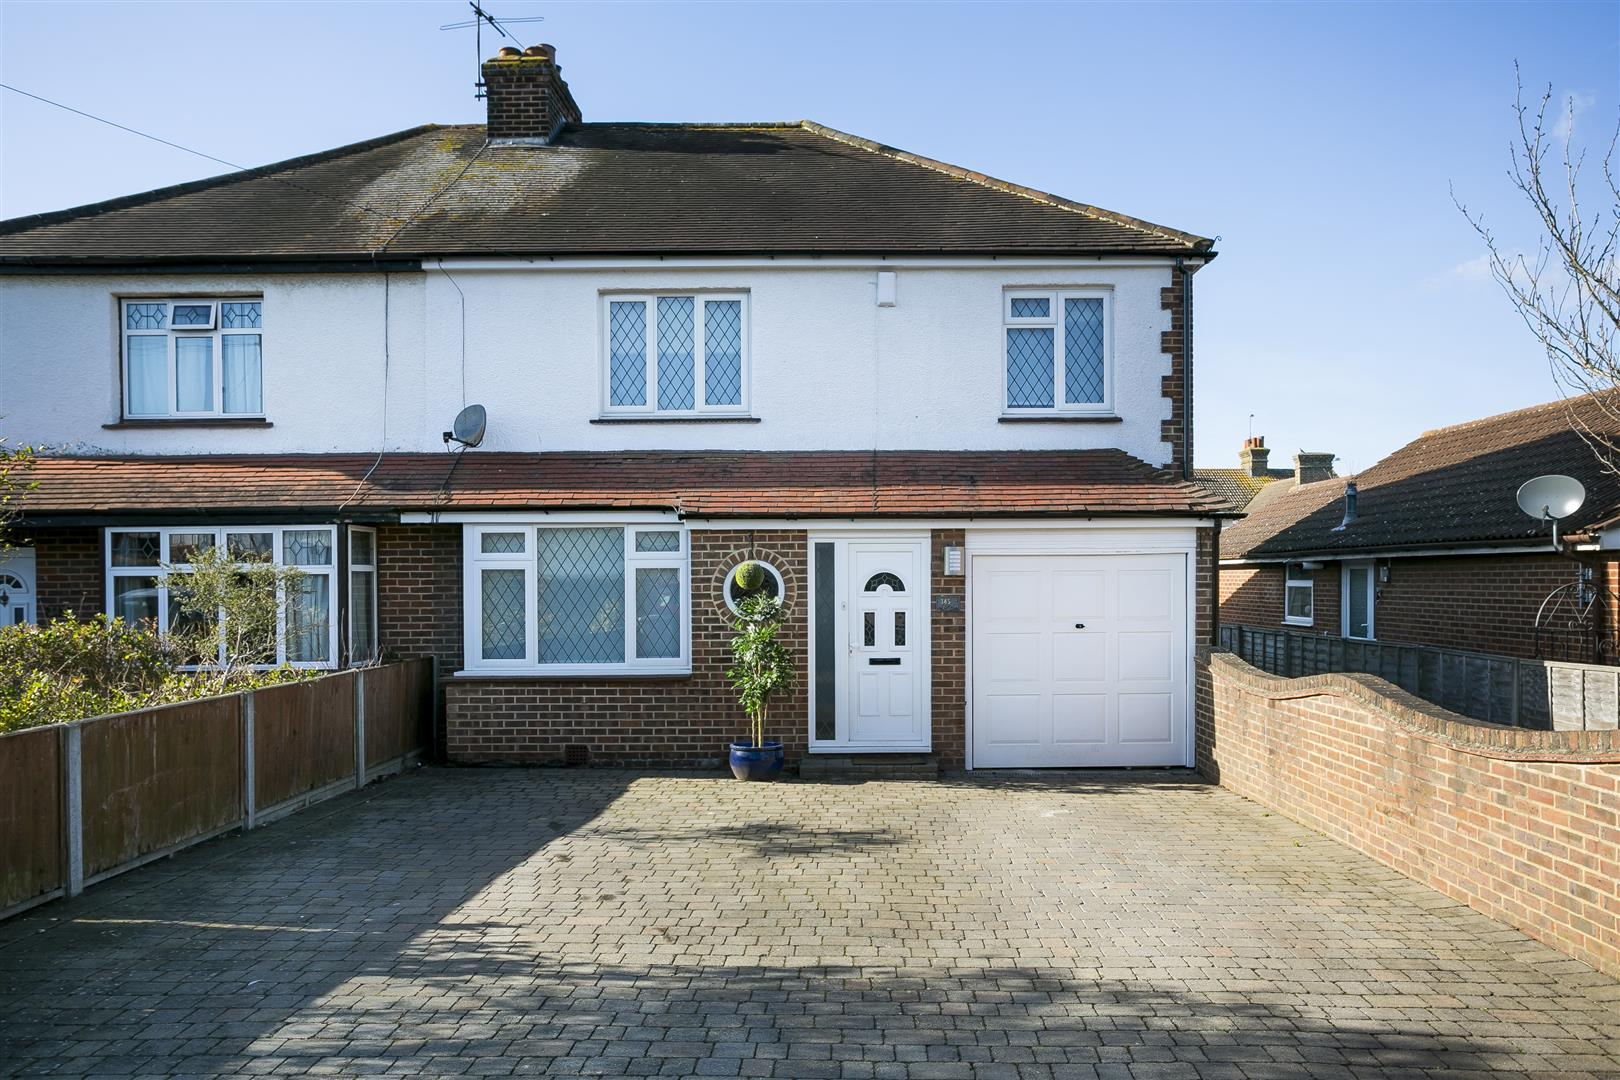 4 Bedrooms House for sale in Lunsford Lane, Larkfield, Aylesford